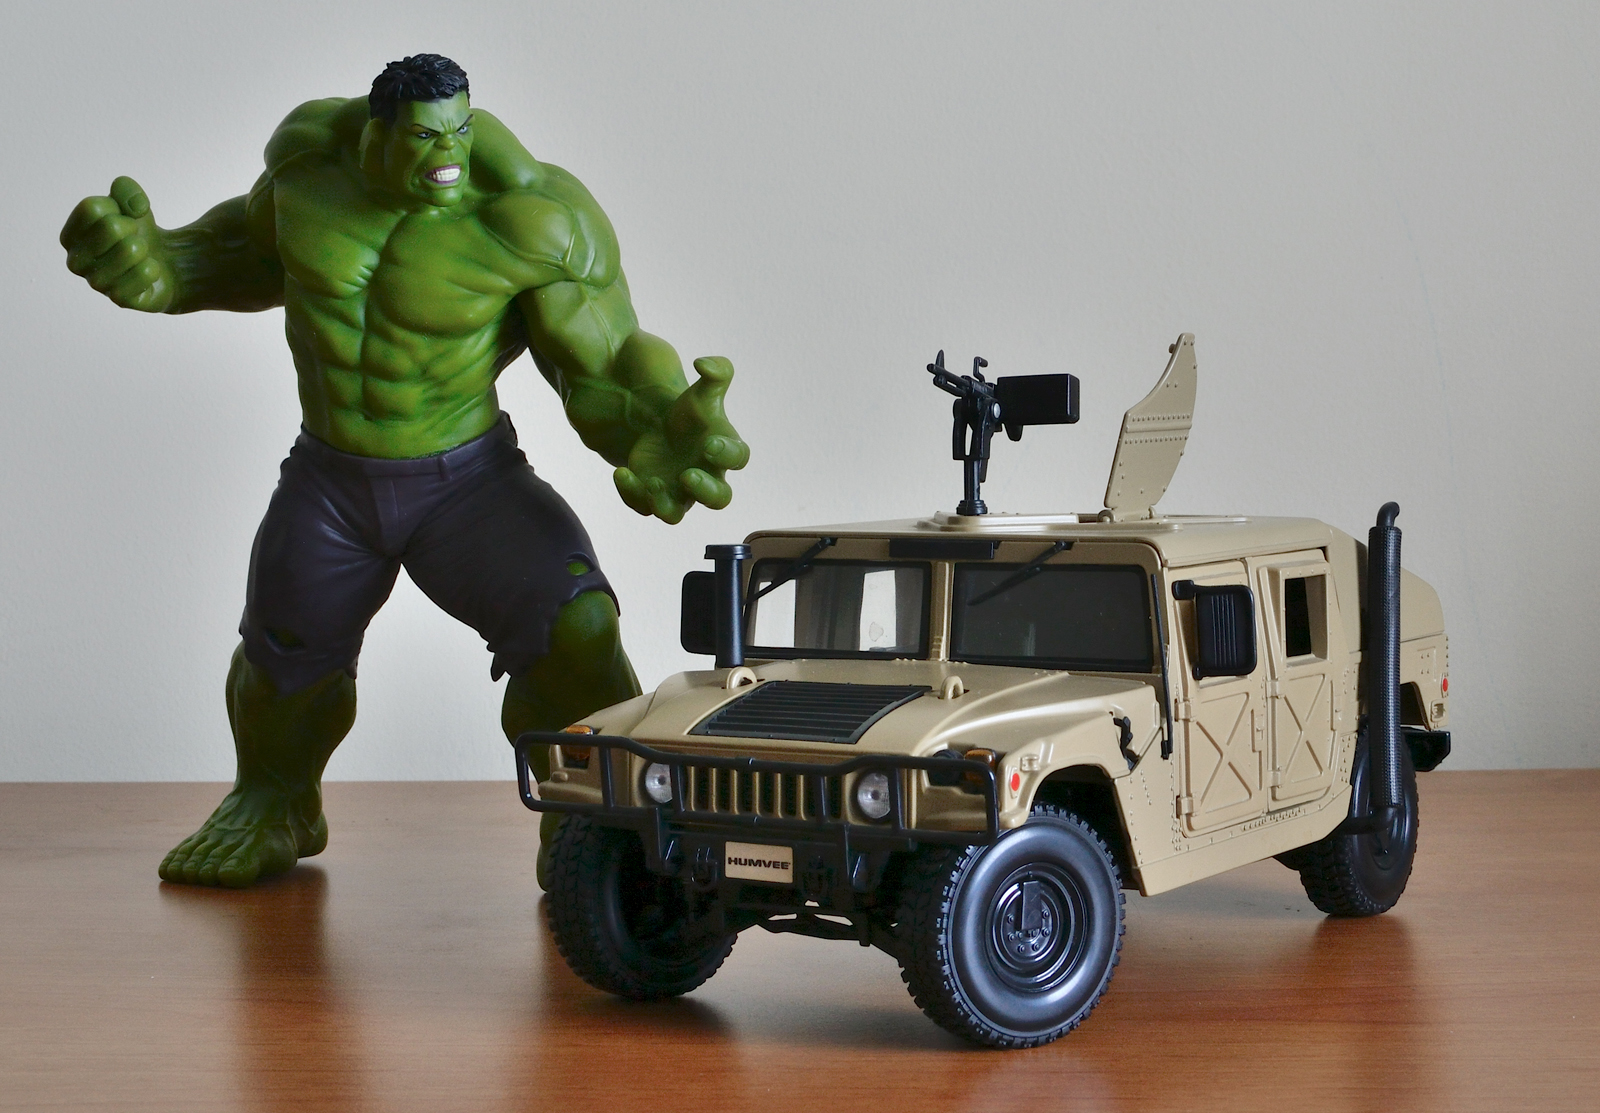 Crazy Toys Avengers - Age of Ultron Hulk Figure vs Hummer